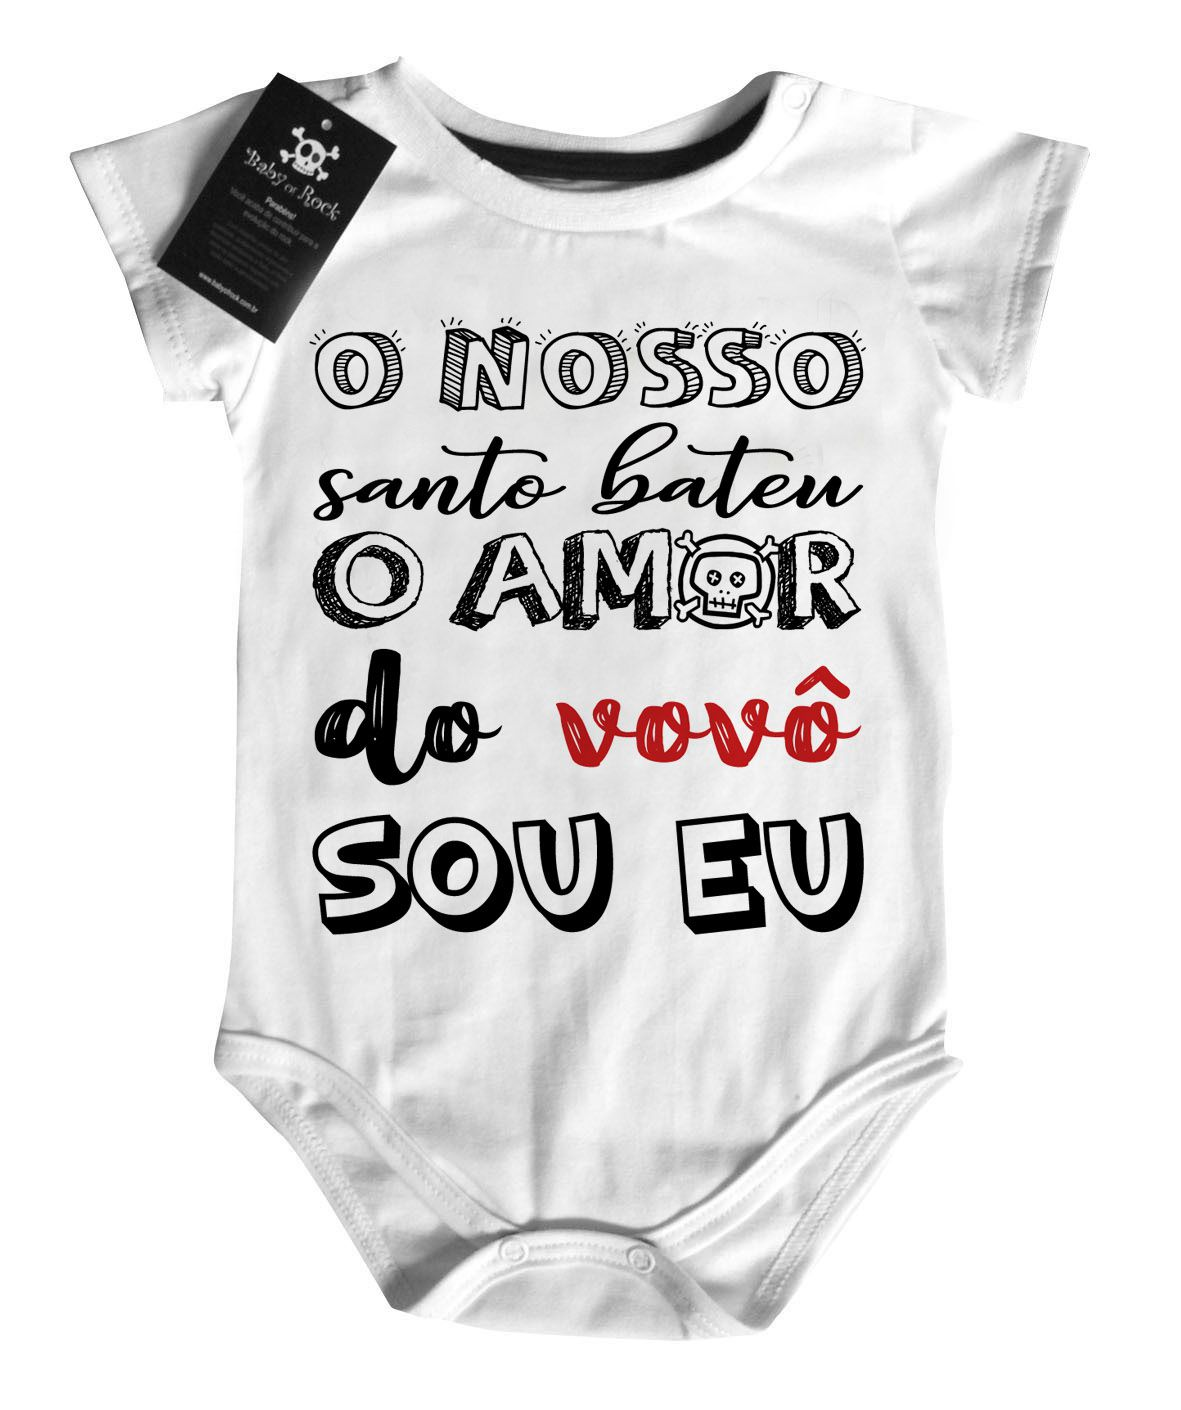 Body Baby Rock - Amor do Vovô - White  - Baby Monster S/A